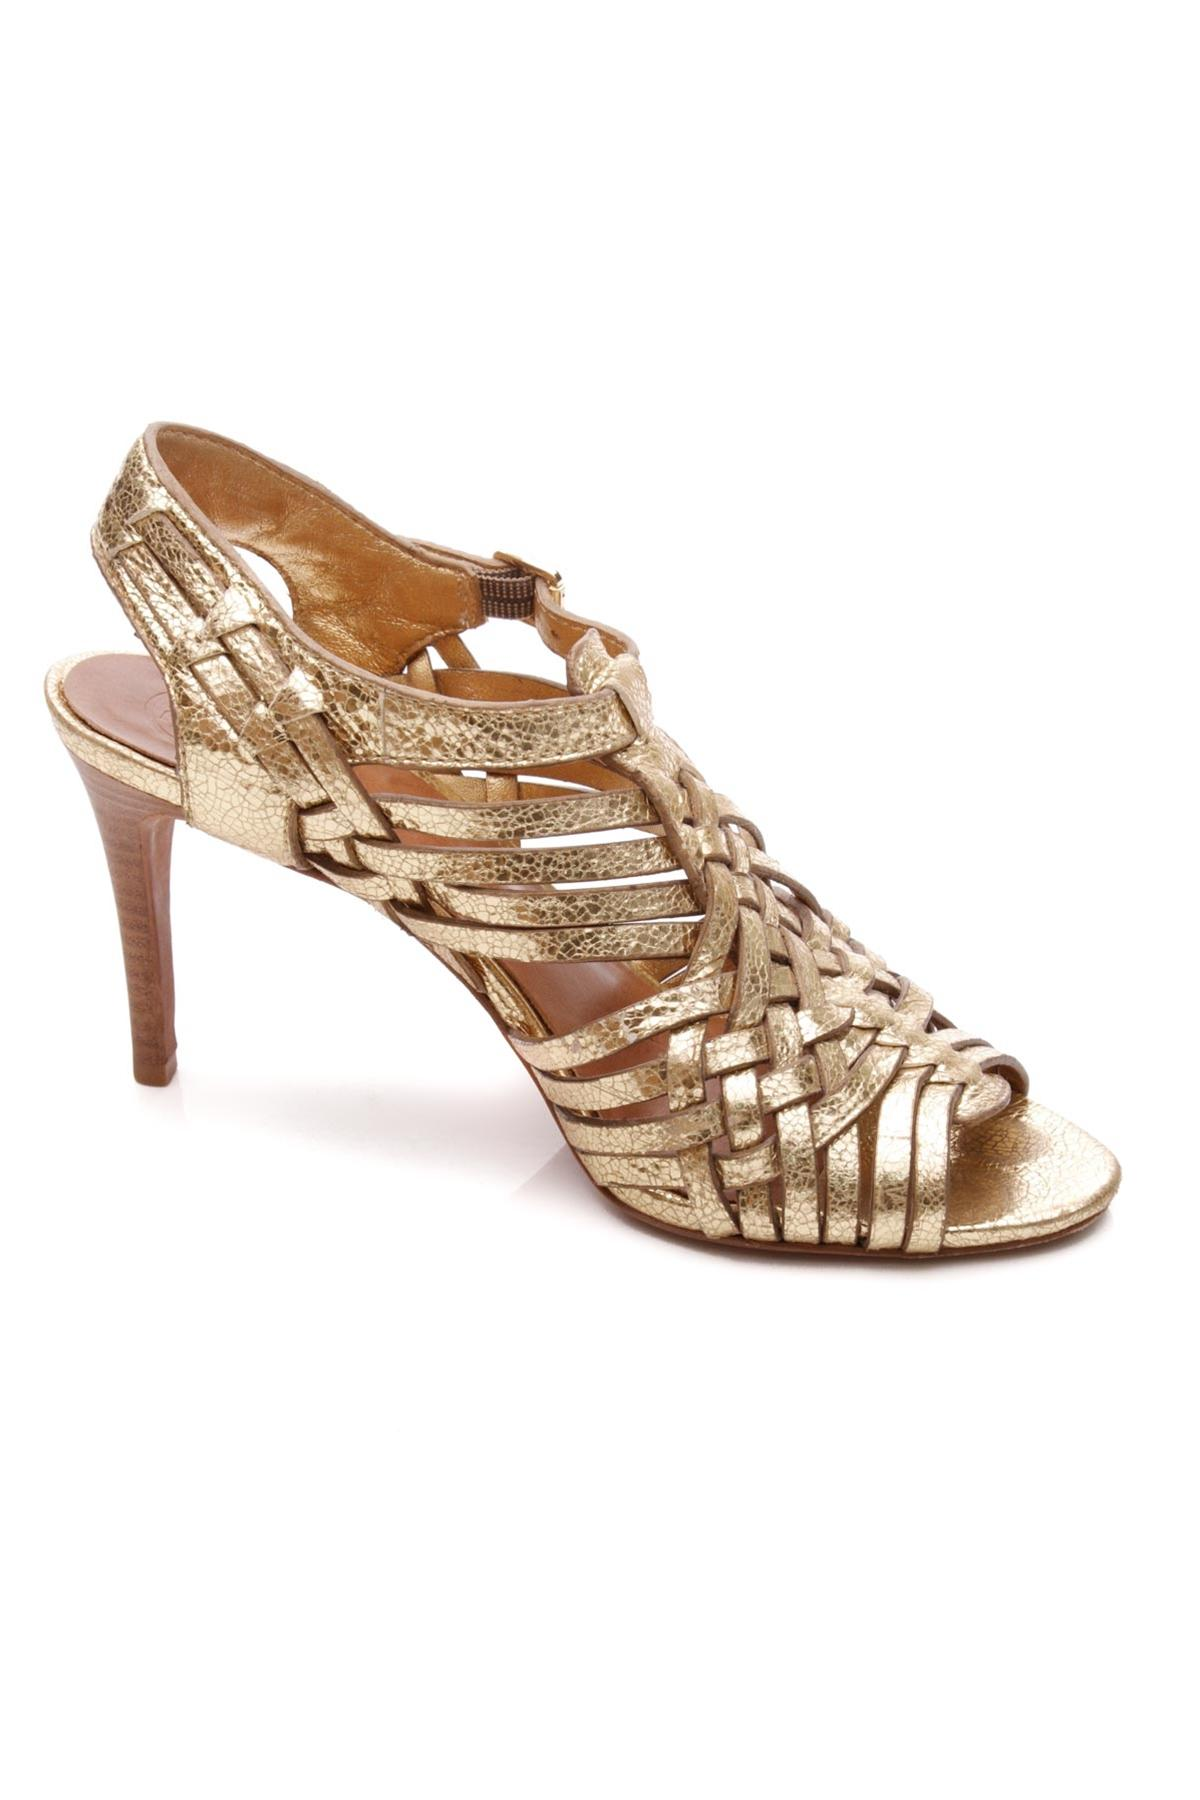 Tory Burch Metallic Gold Leather Nadia Sandals Size US 8.5 Regular ...